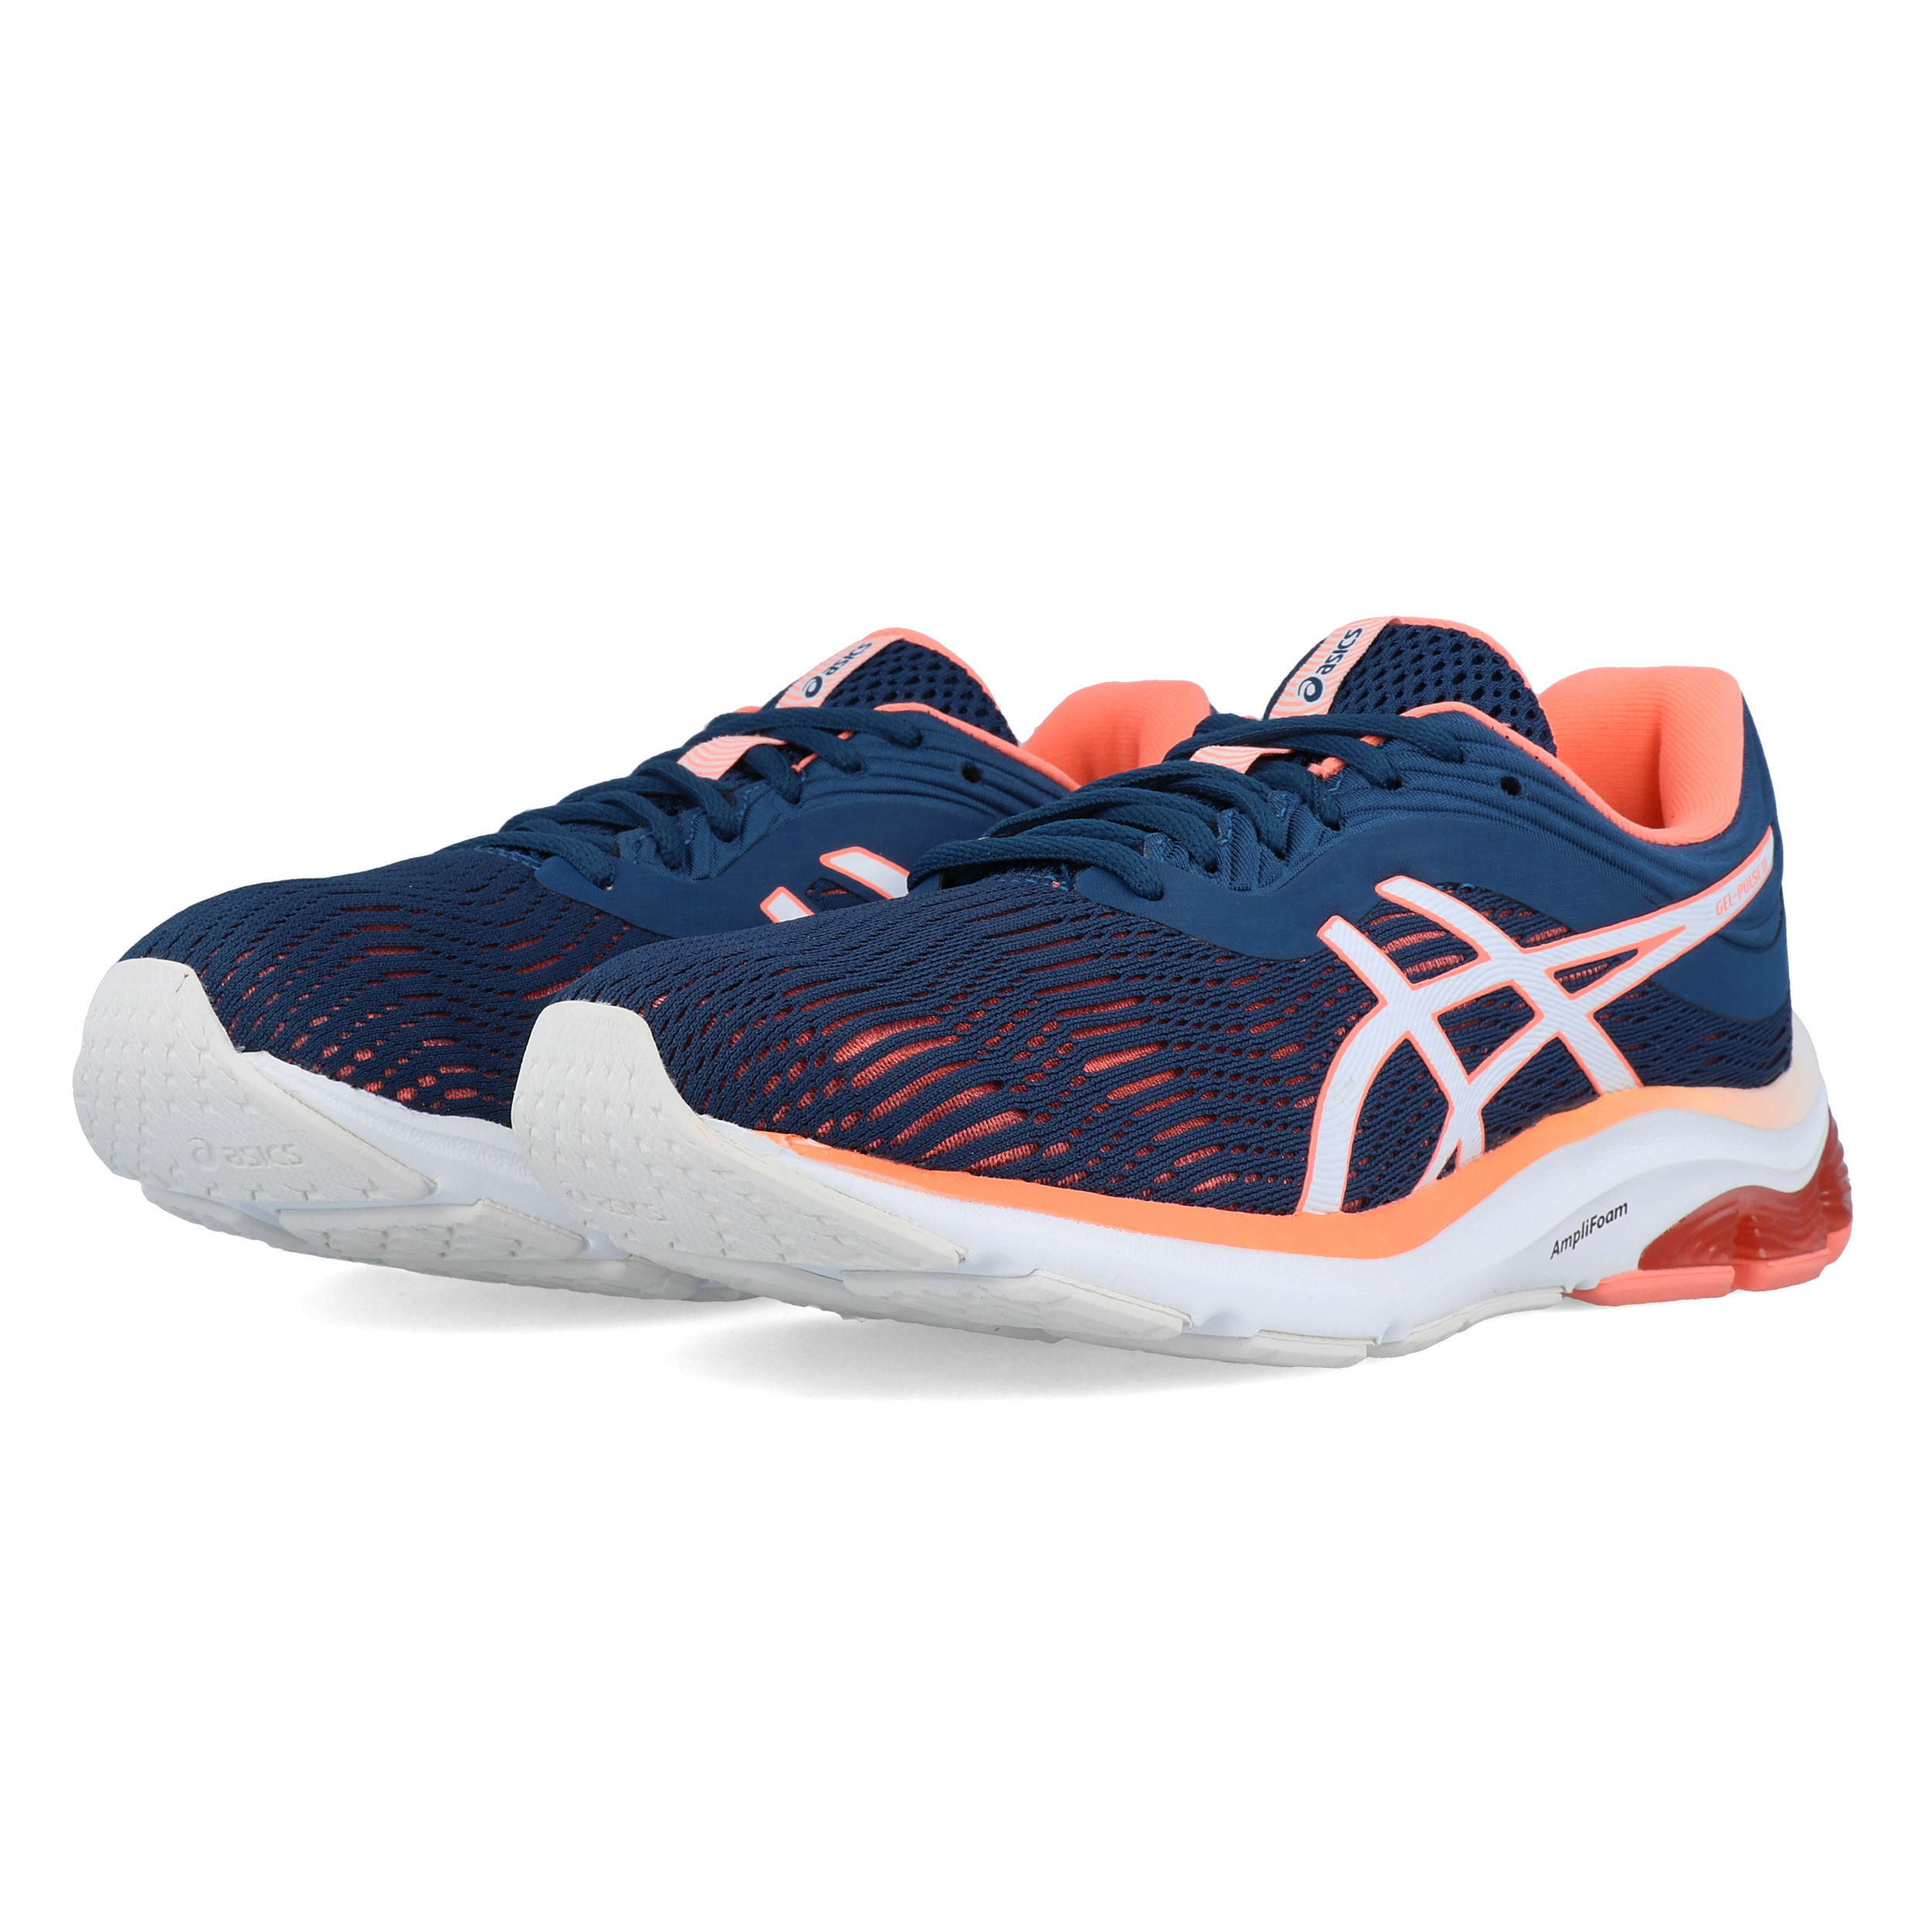 Details zu Asics Womens Gel Pulse 11 Running Shoes Trainers Sneakers Navy Blue Sports